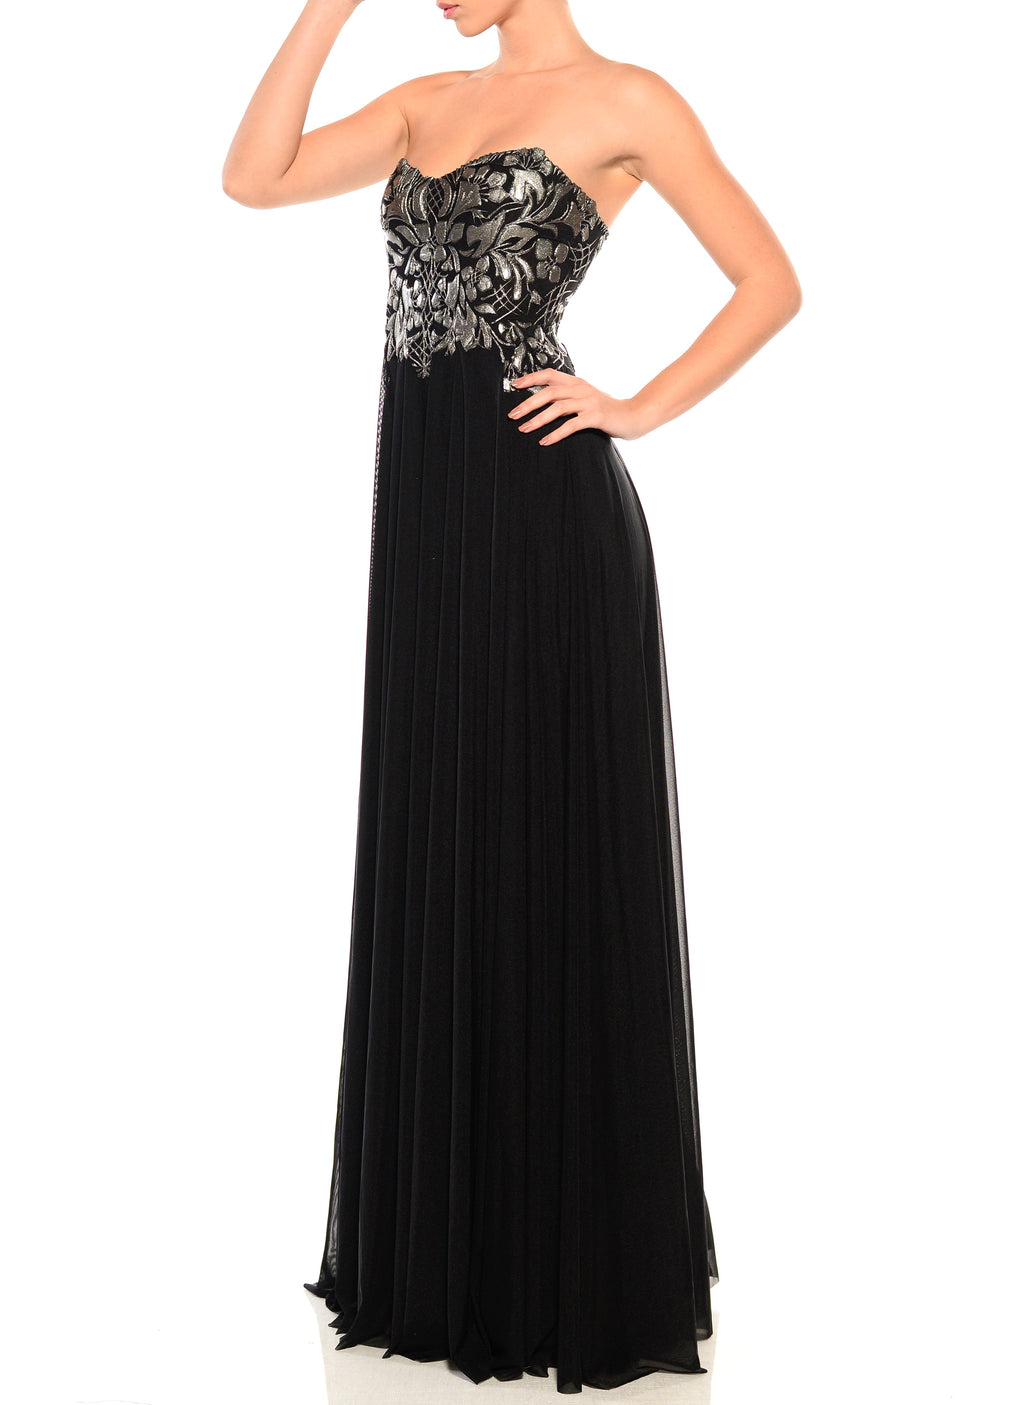 Floor Length Strapless Sweetheart Dress - D1223WA - TRIBAL SMALL